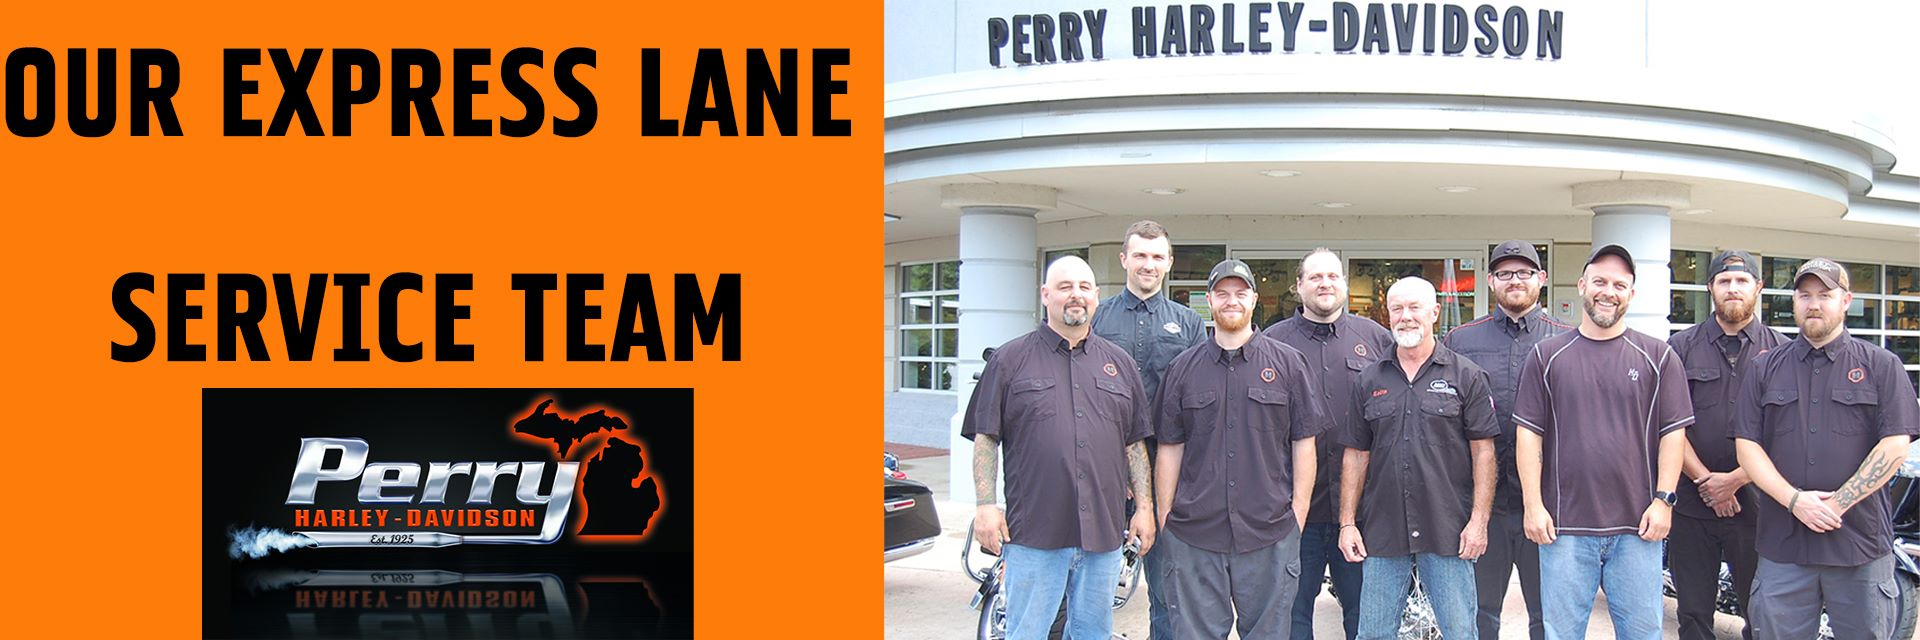 Perry Harley-Davidson: Motorcycle Dealers, Kalamazoo -Battle